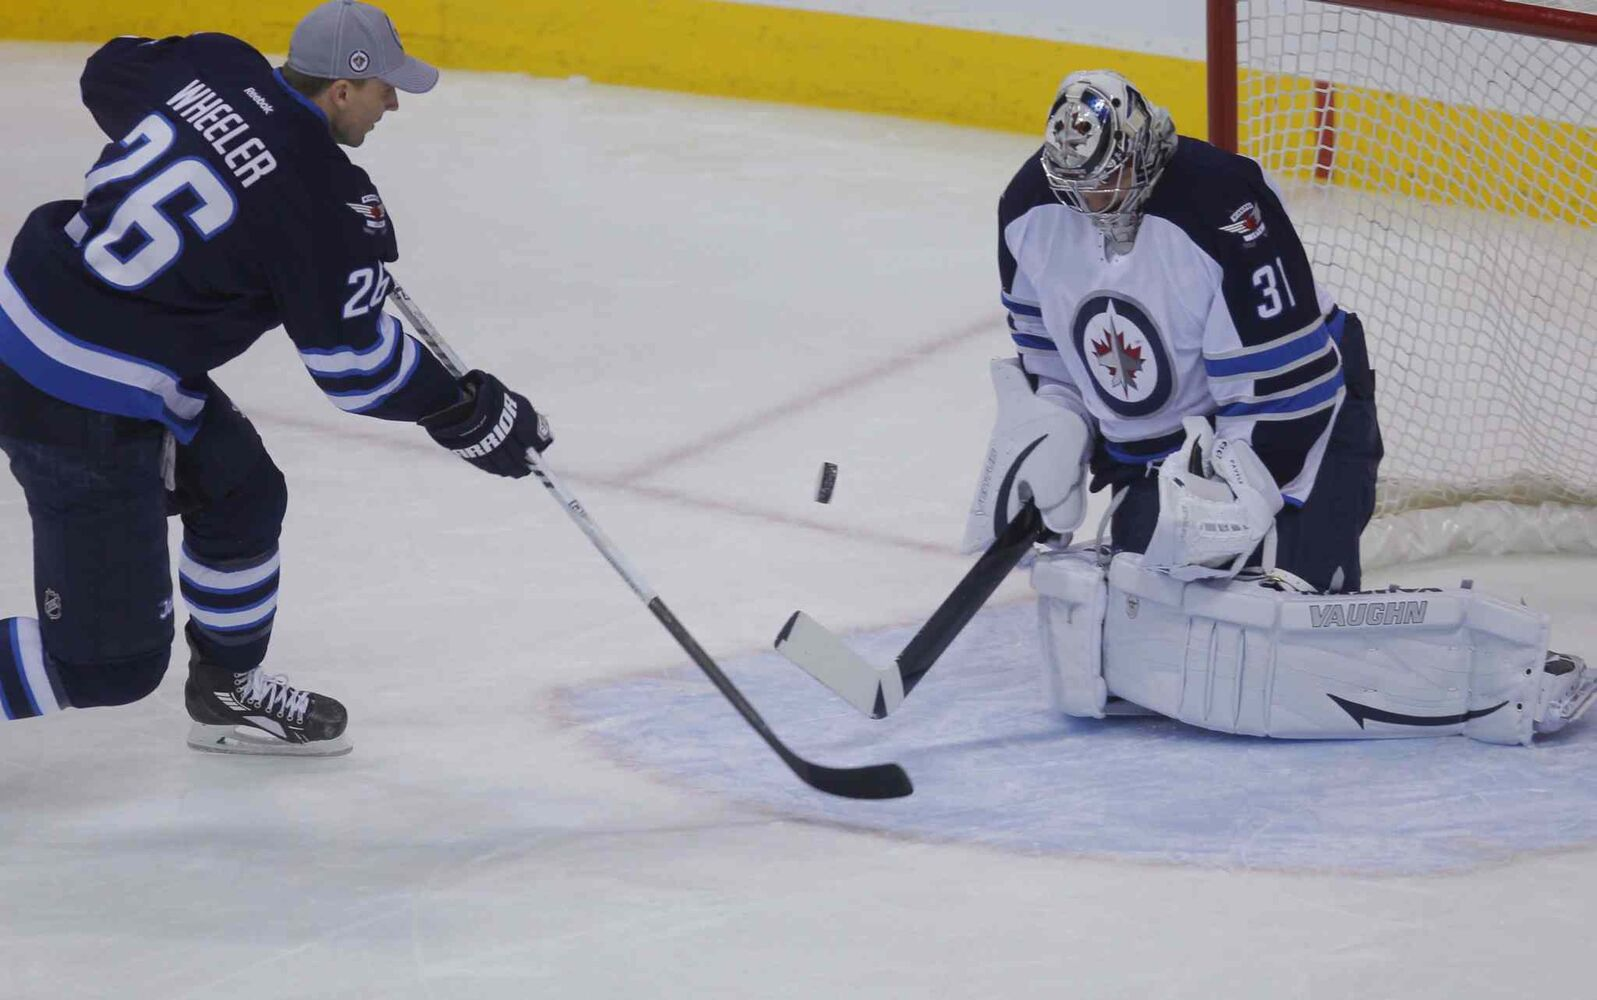 Blake Wheeler moves in on Ondrej Pavelec during the shootout portion of the skills competition.